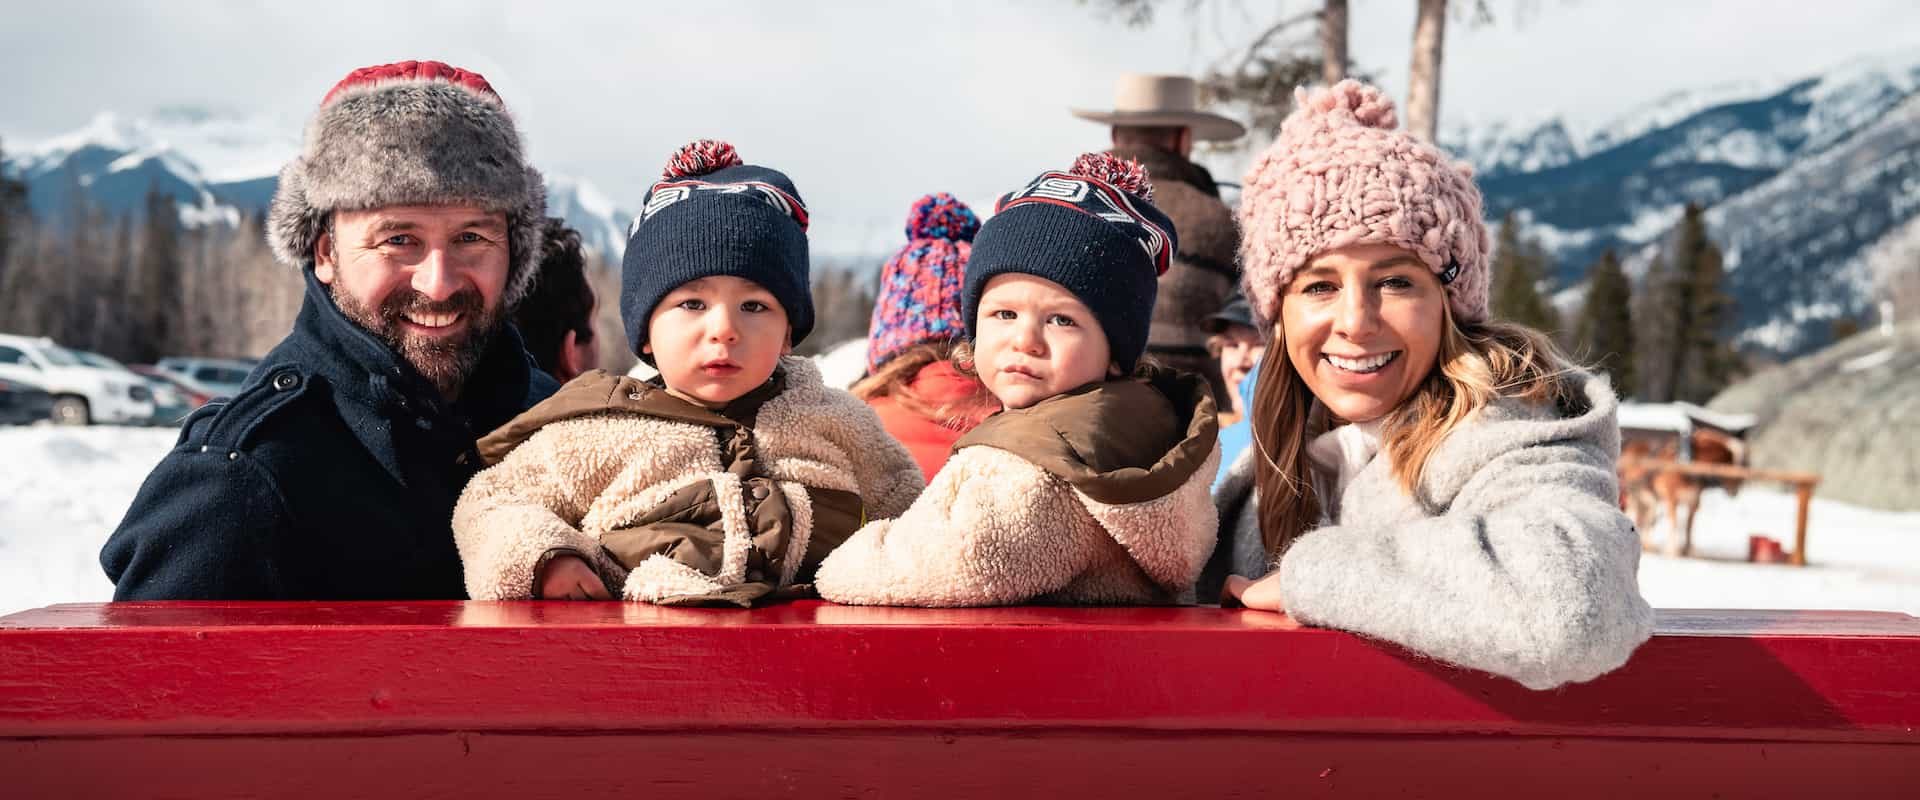 Banff family winter sleigh ride